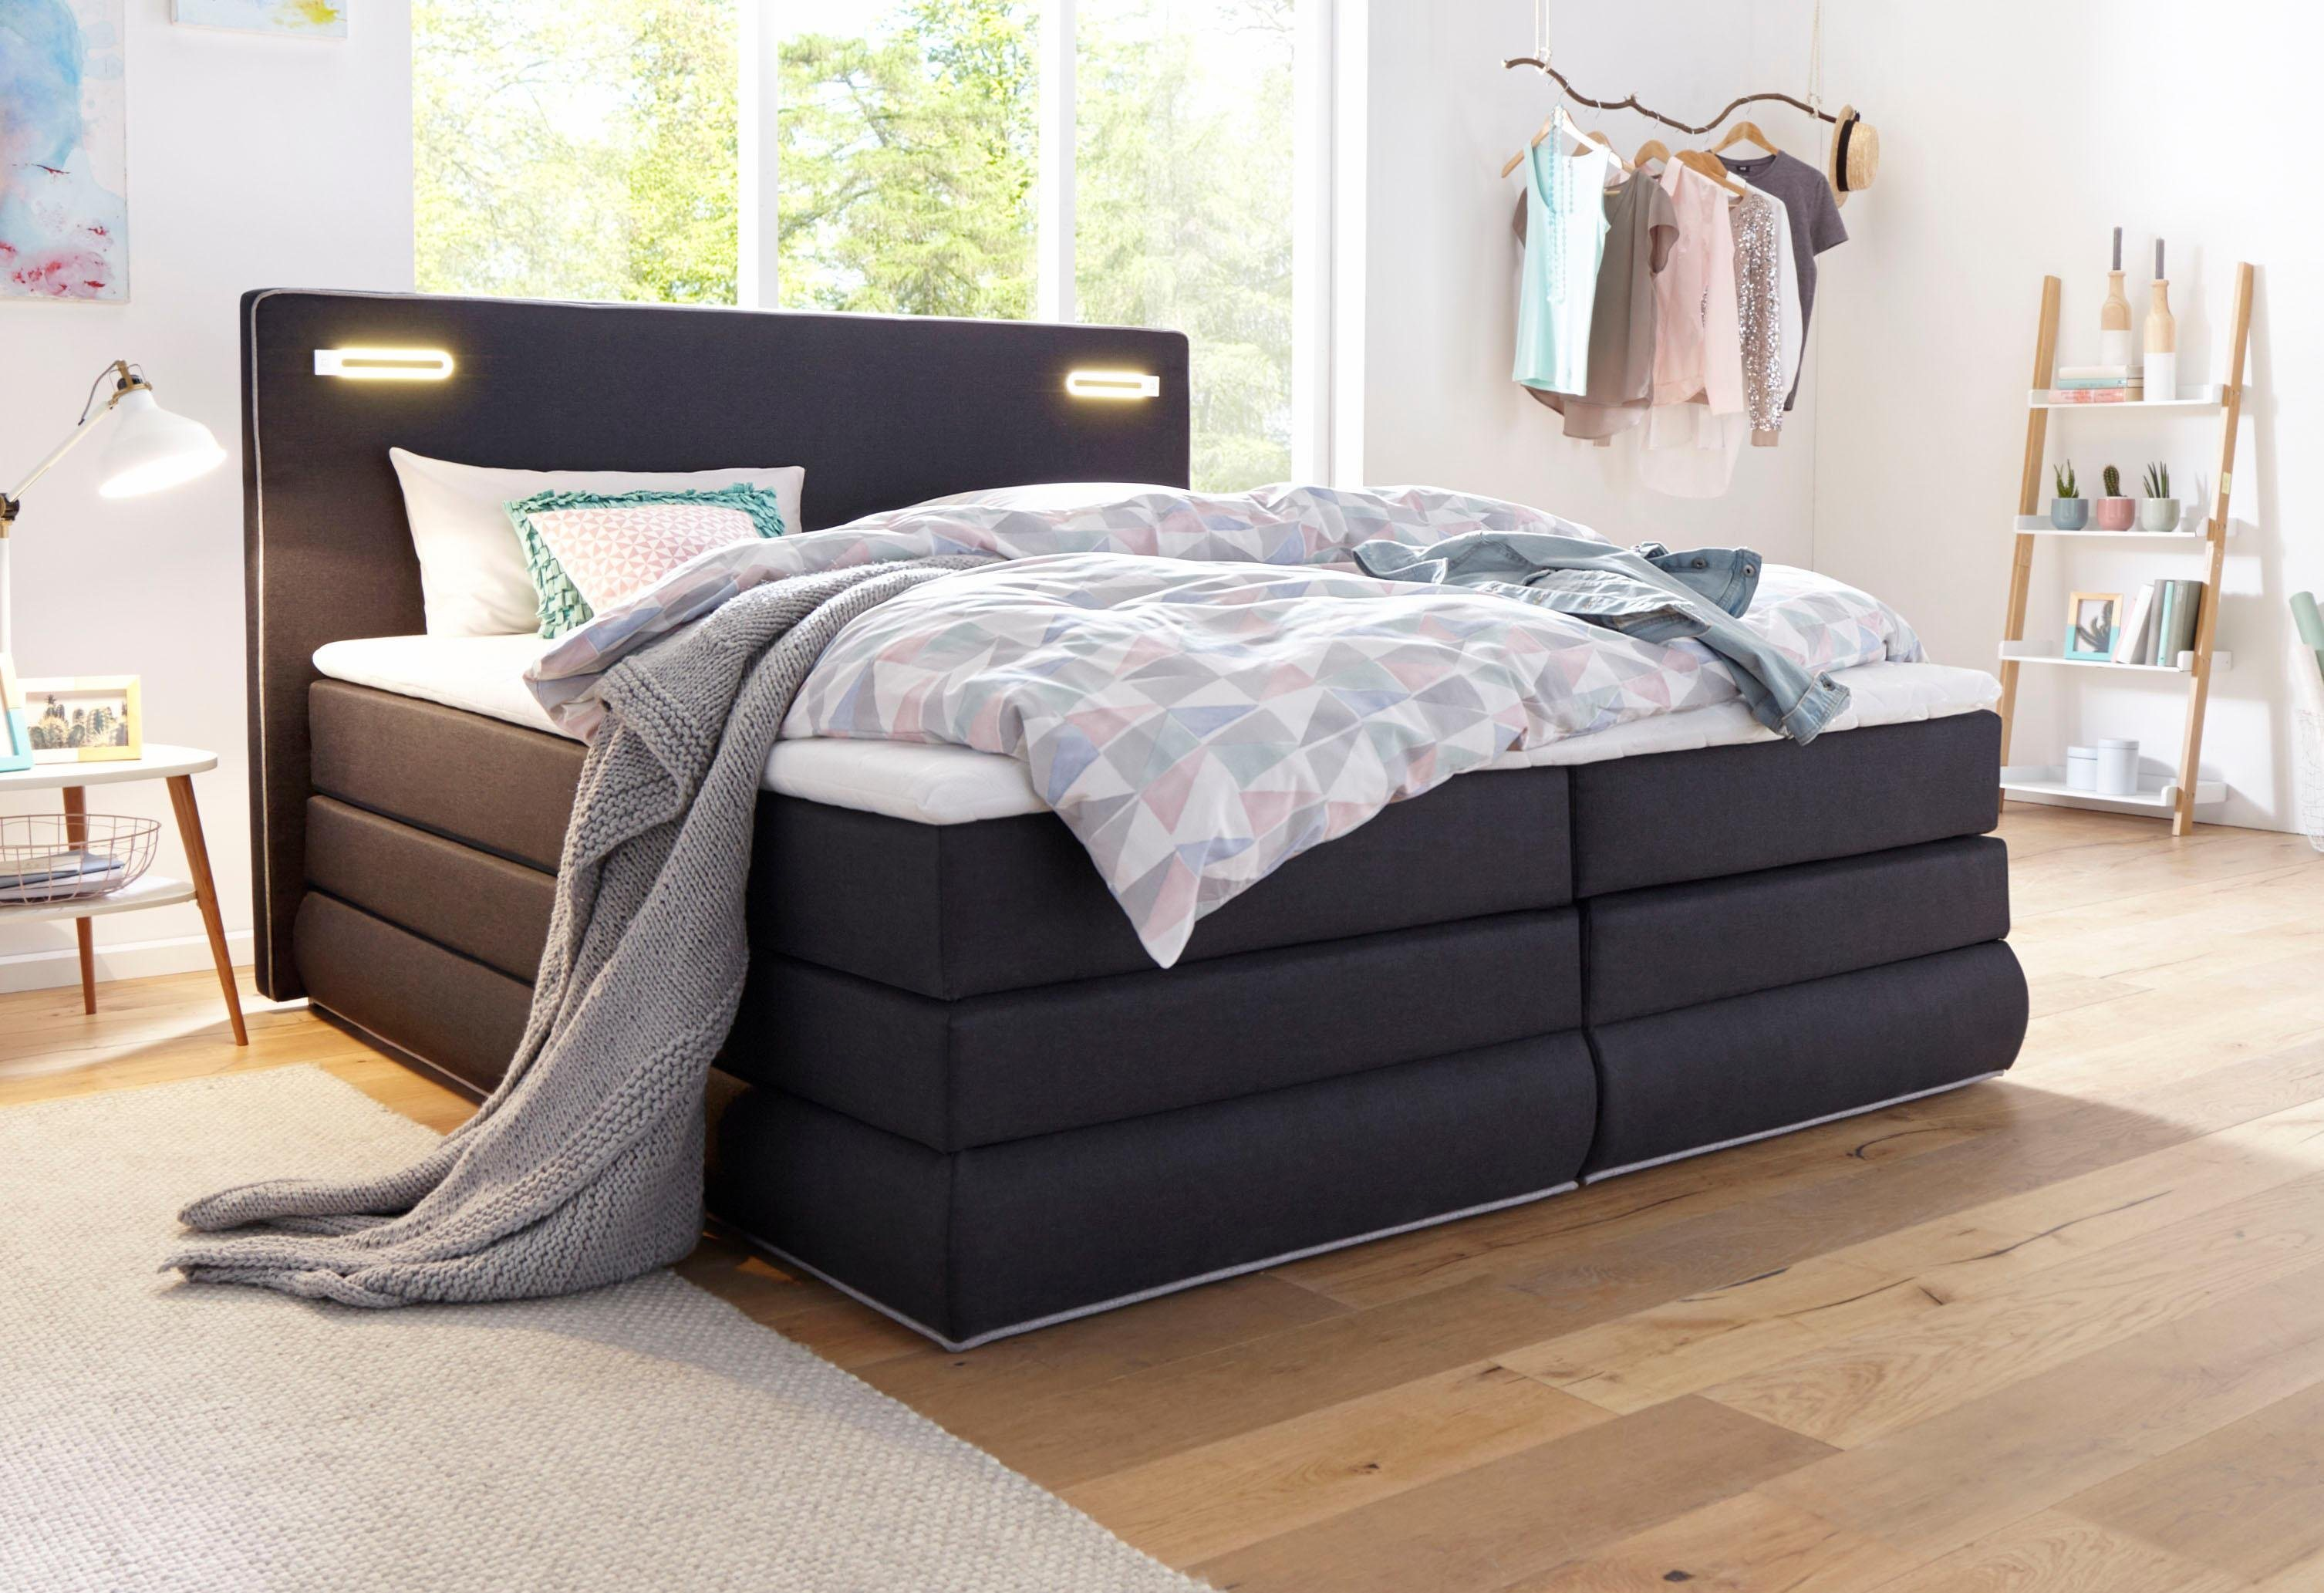 boxspringbetten 180x200 cm mit bettkasten im angebot. Black Bedroom Furniture Sets. Home Design Ideas